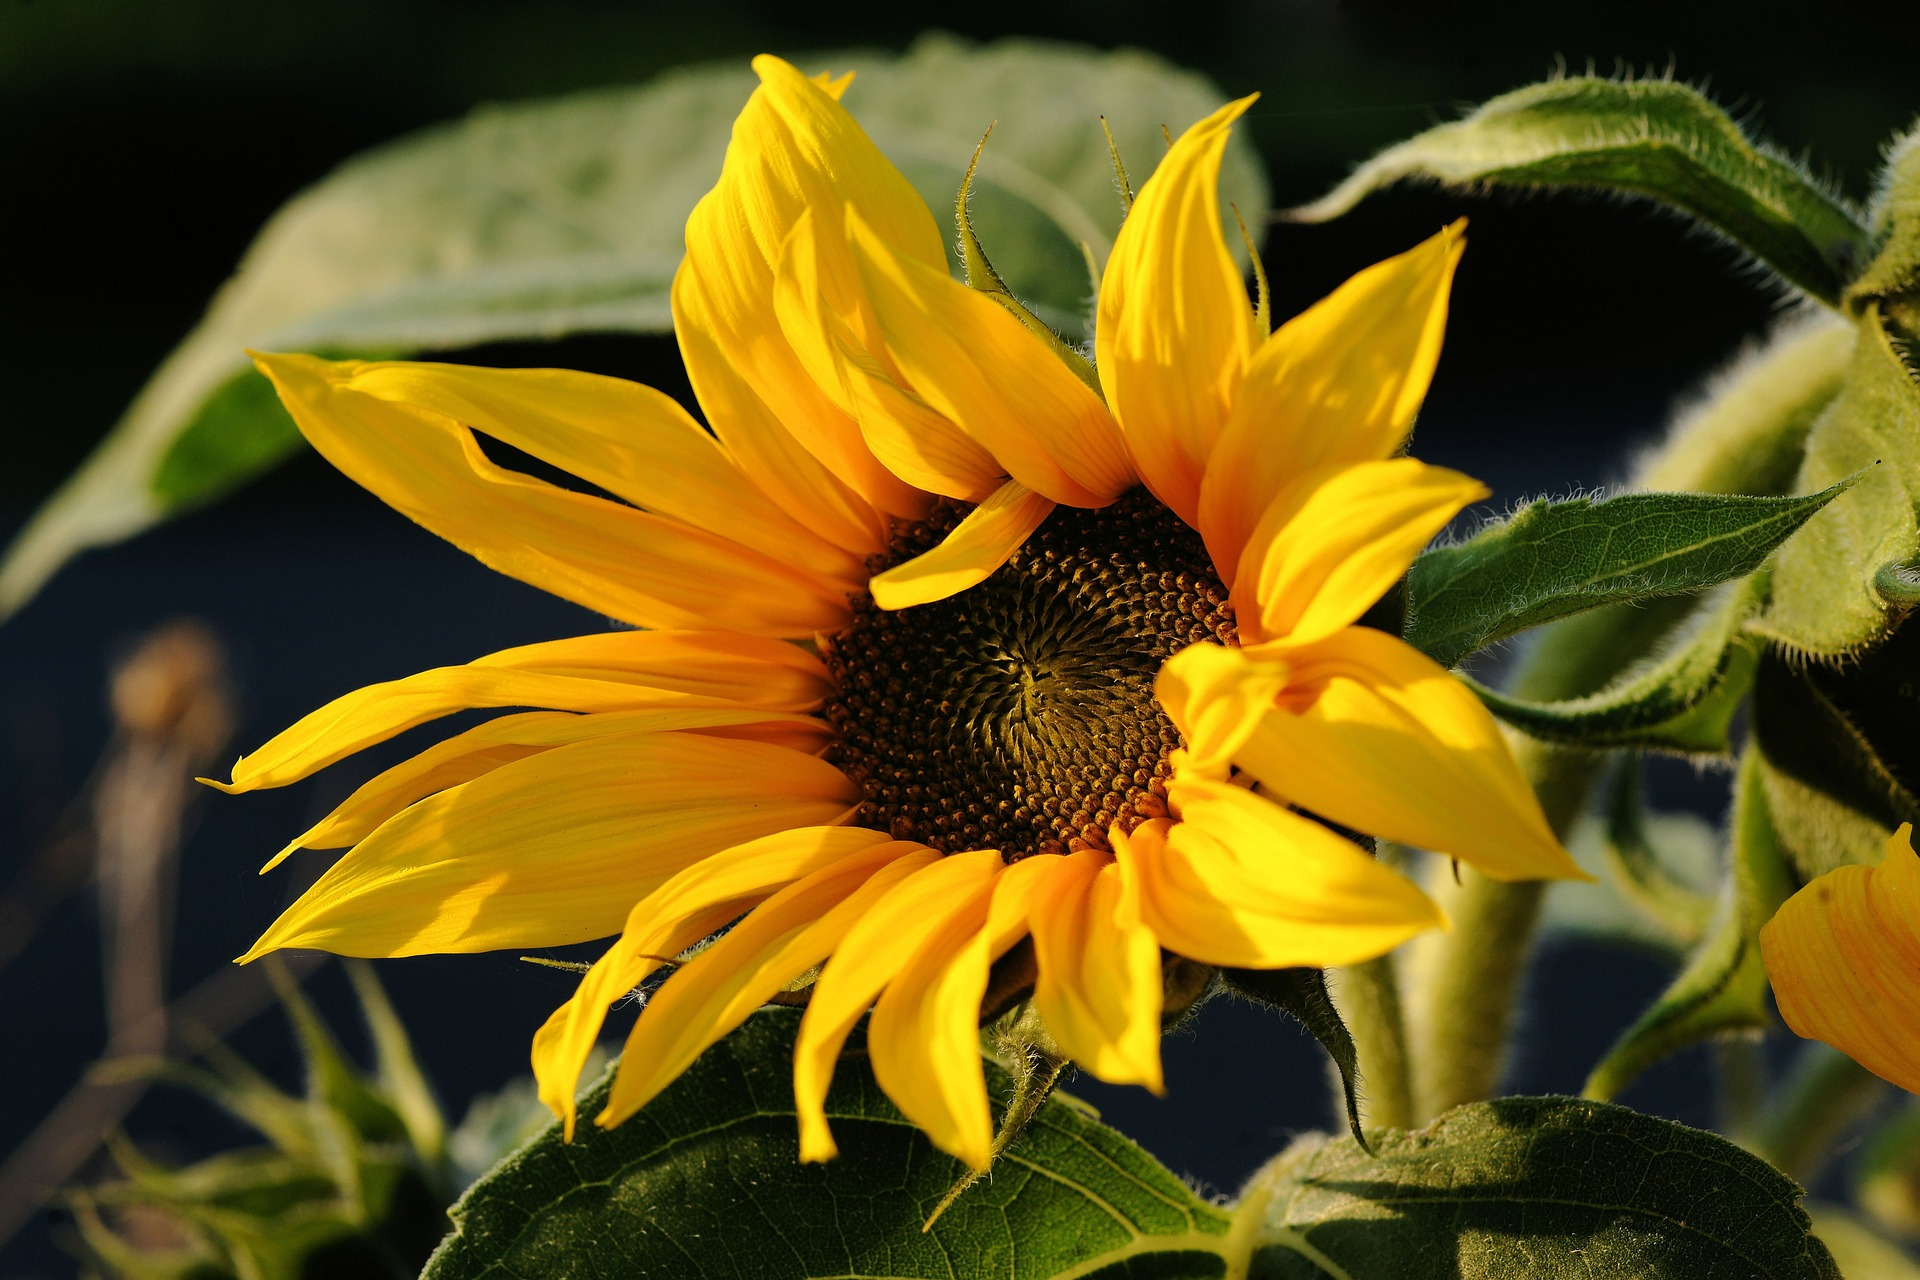 sunflower-454243_1920